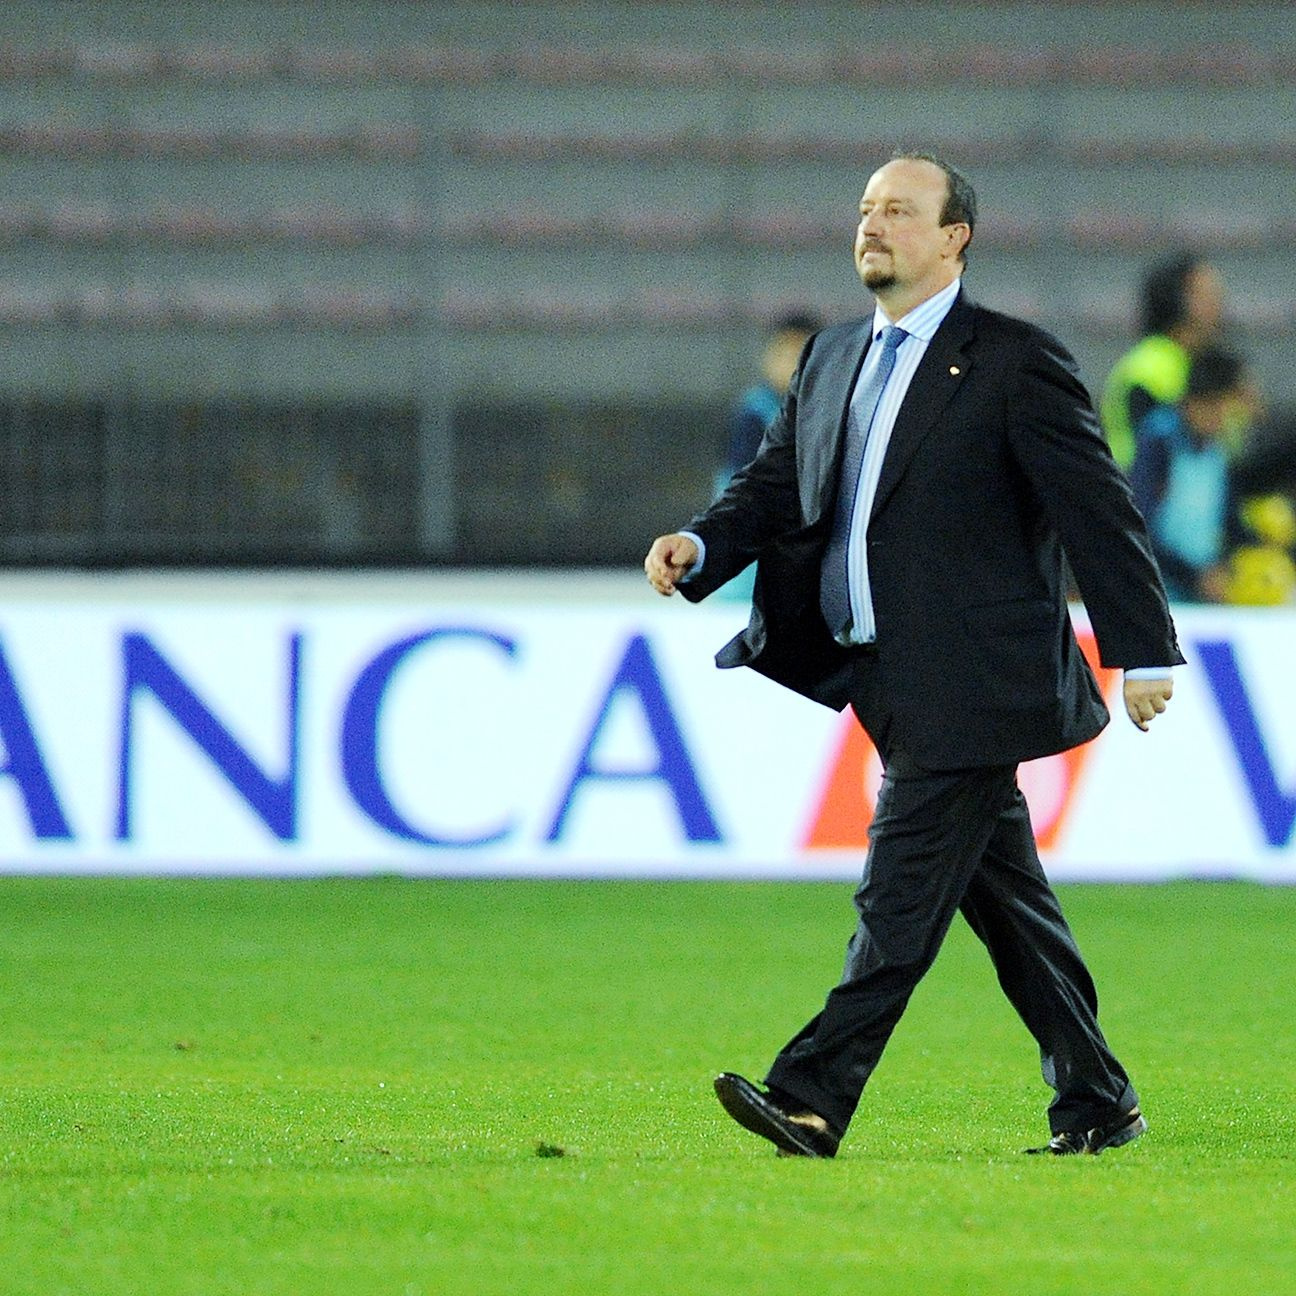 After Jose Mourinho led Inter to the treble in 2010, Rafa Benitez took over only to then see the club's spending dry up.